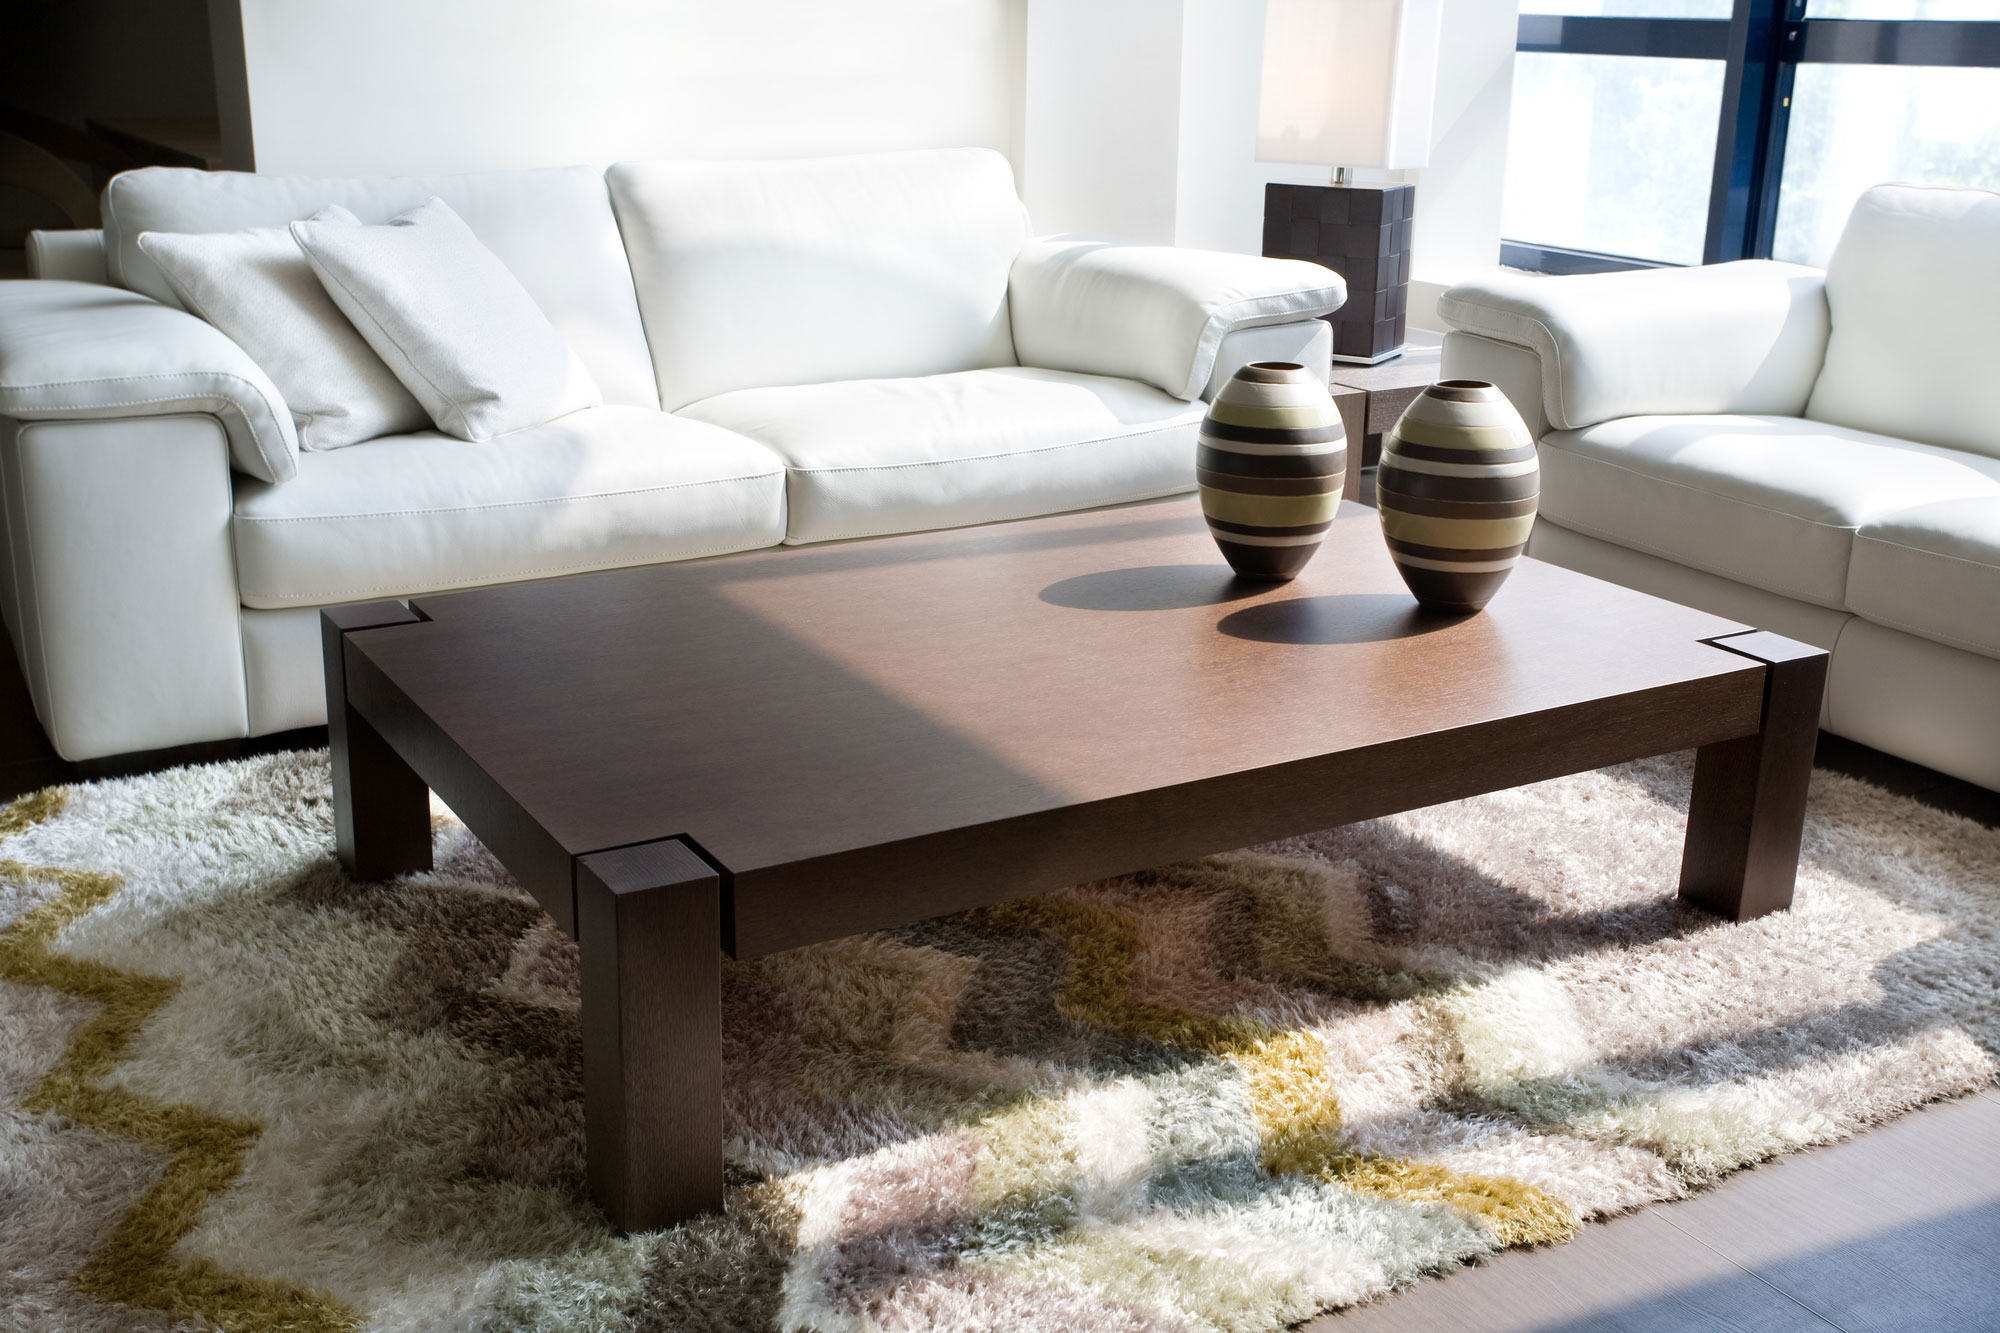 Pittsburgh Furniture couch table example two